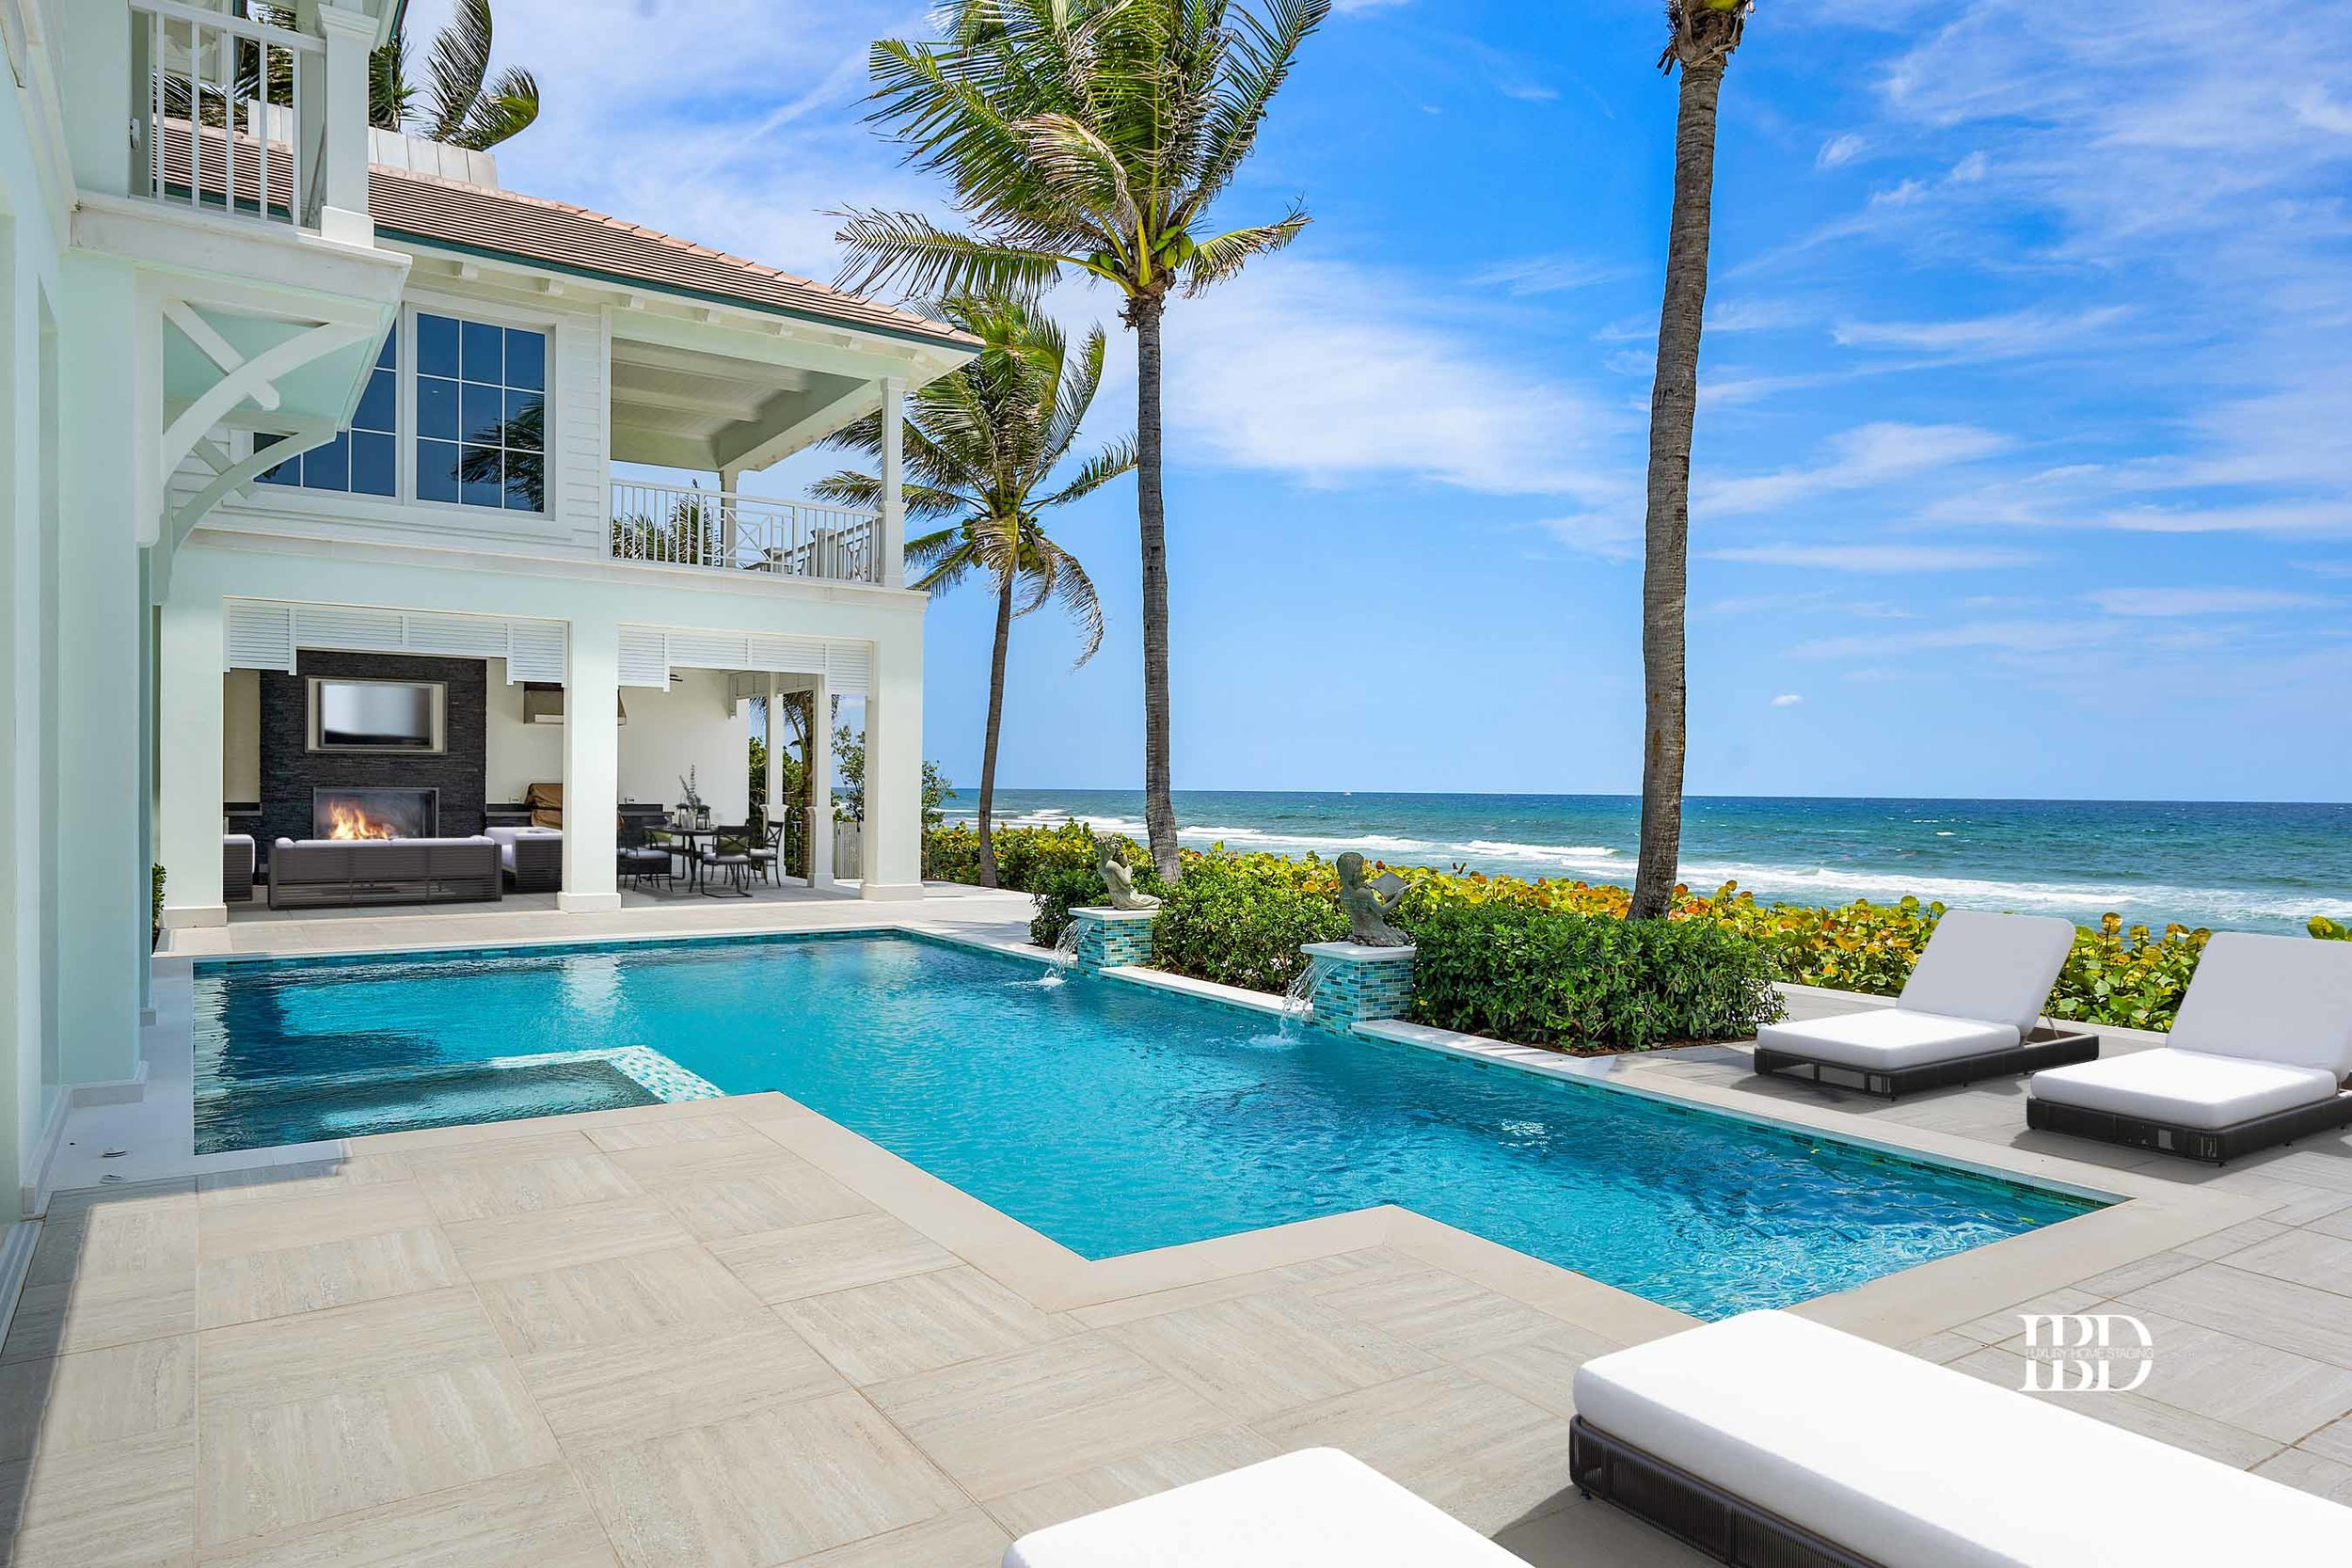 IN CONTRACT IN 2 WEEKS - NOW SOLD - GULF STREAM, FL